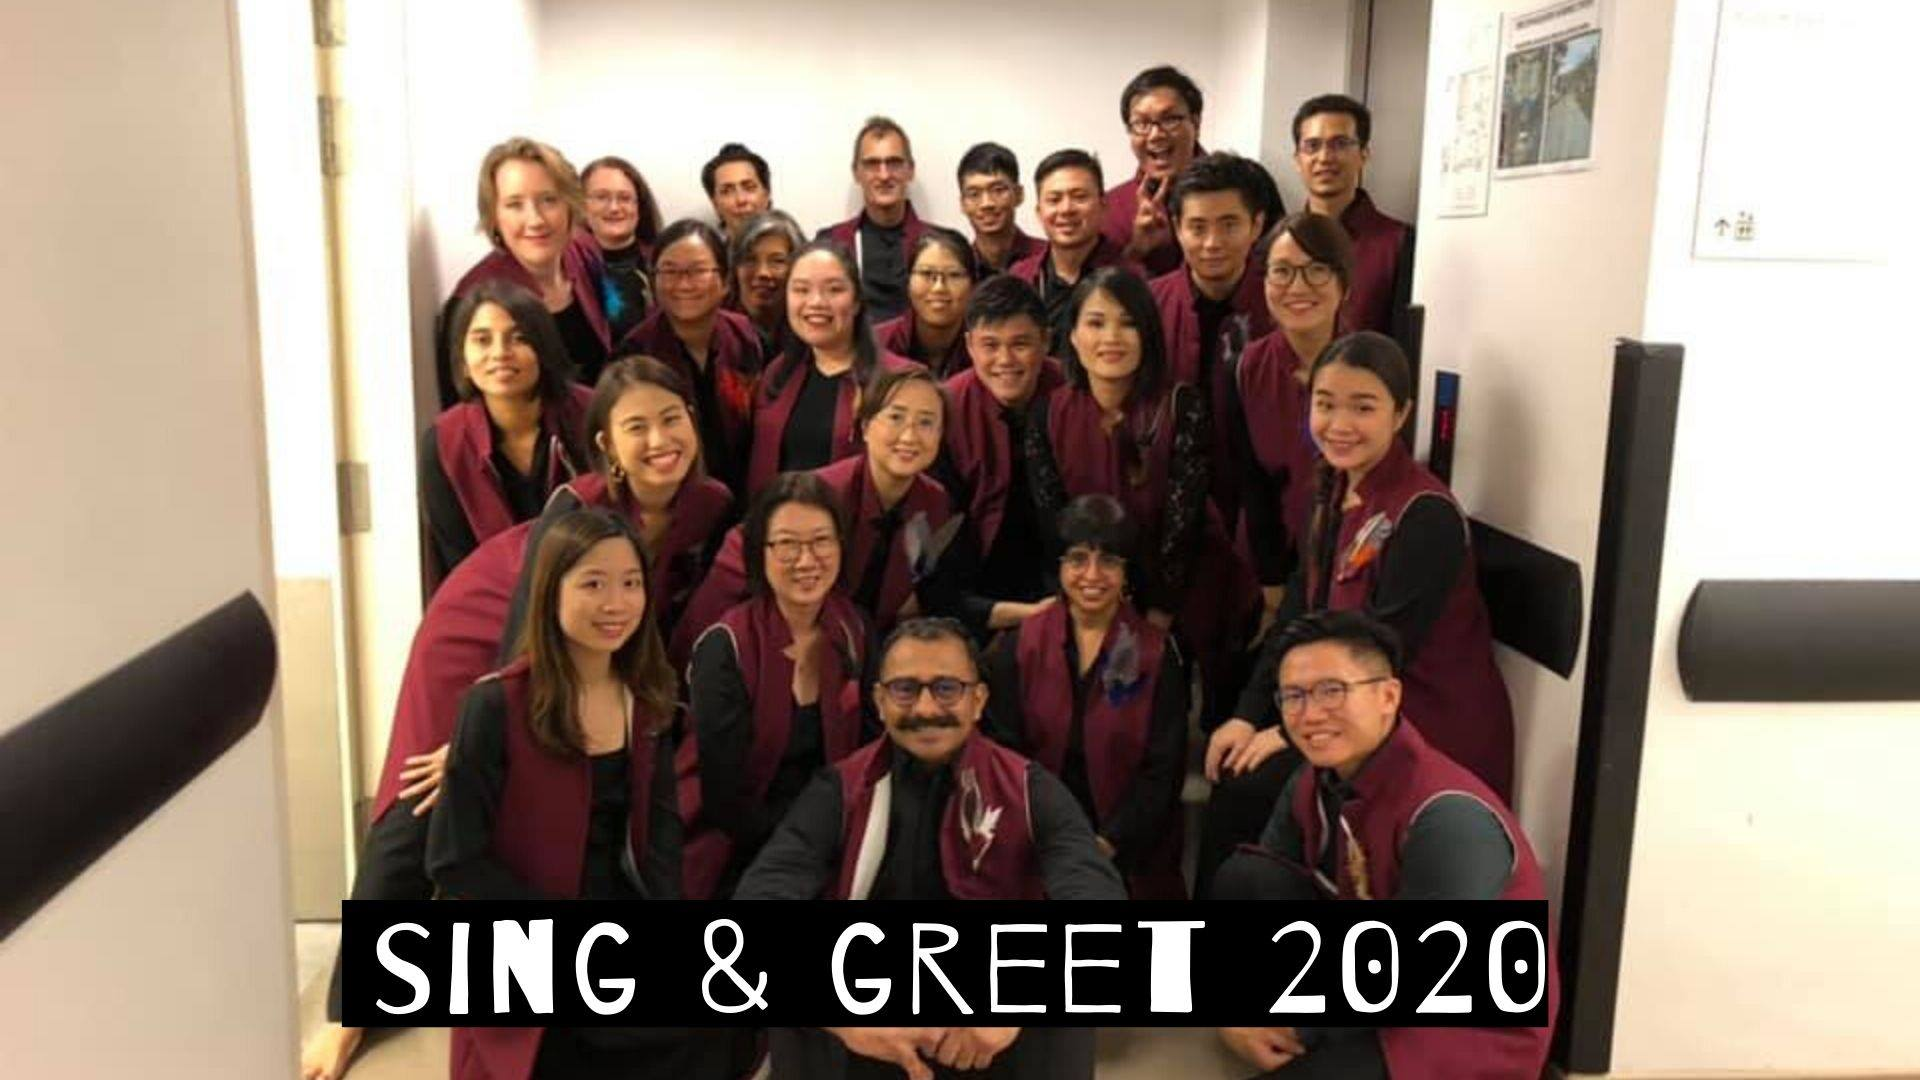 Sing and Greet 2020!